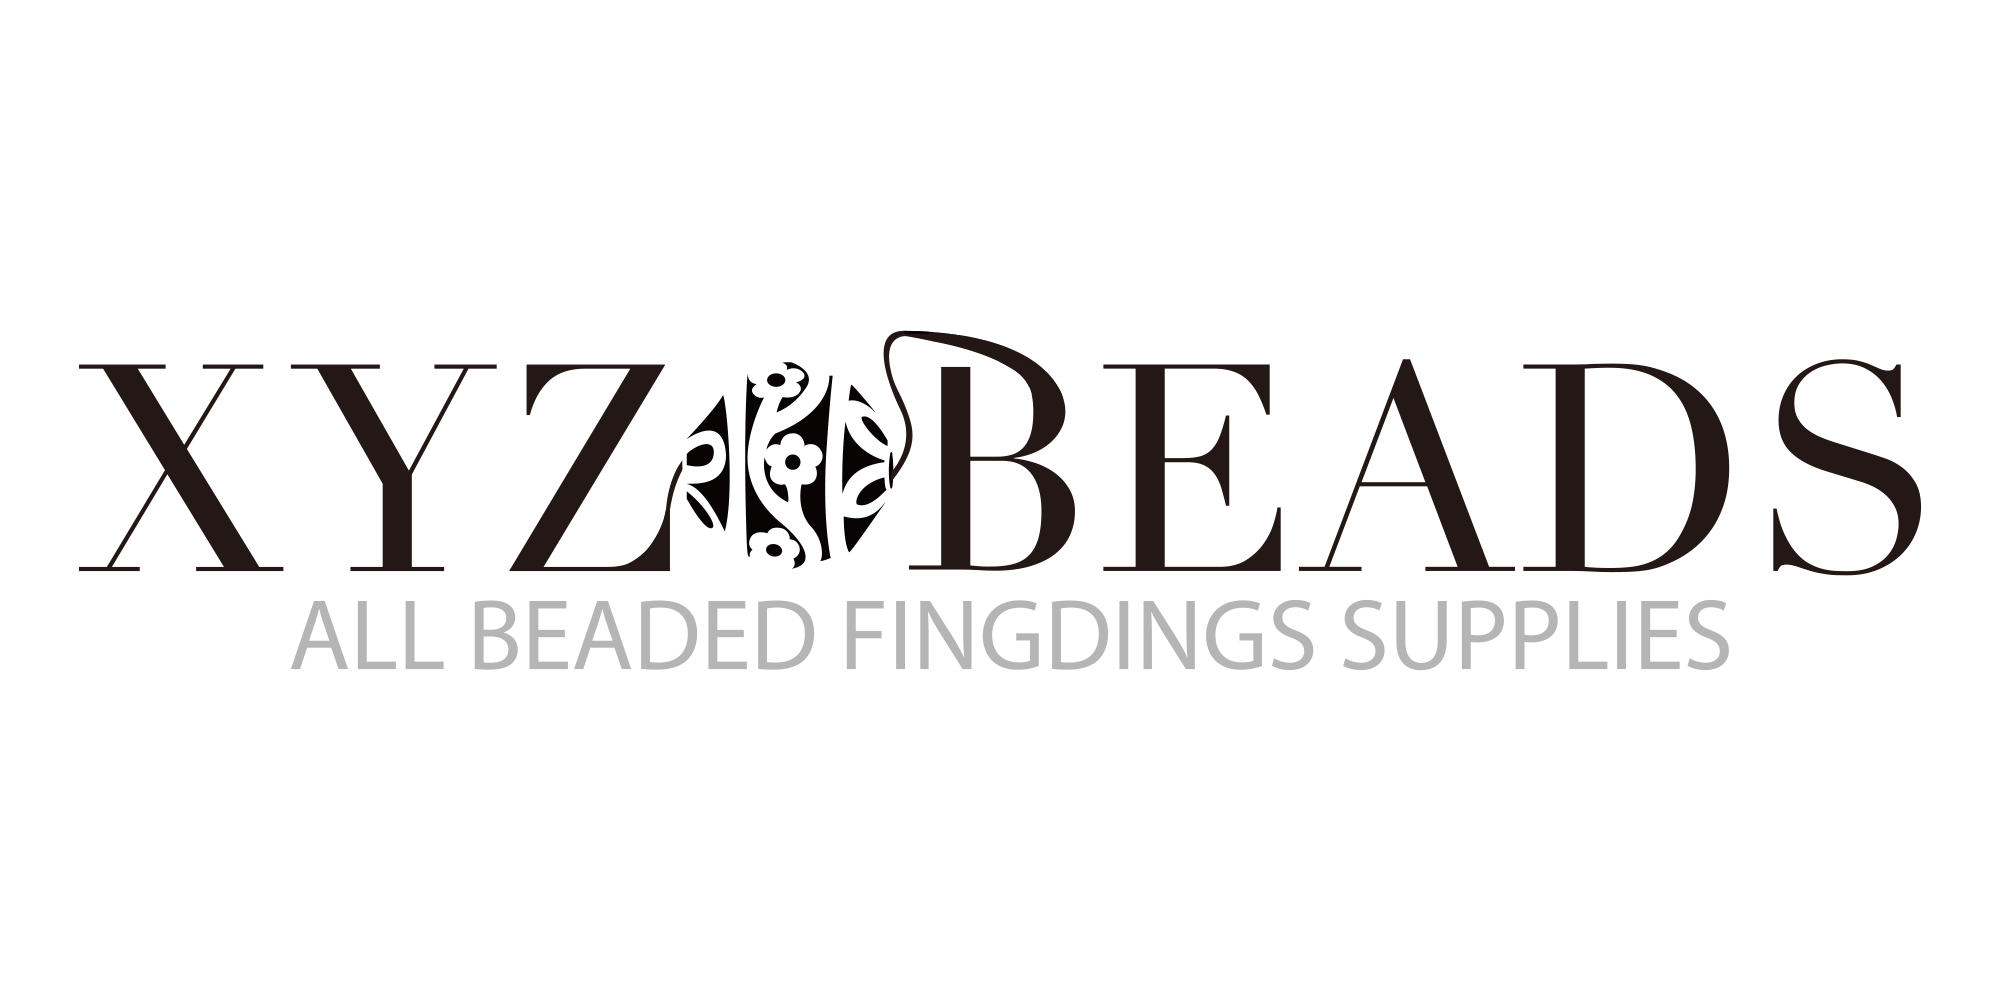 xyzbeads is a federation of Chinese factories and also the Chinese Small Merchandise online market. We retail and wholesale Beads & Findings including jade, silver, pearl, gemstone, lampwork glass and crystal items etc.